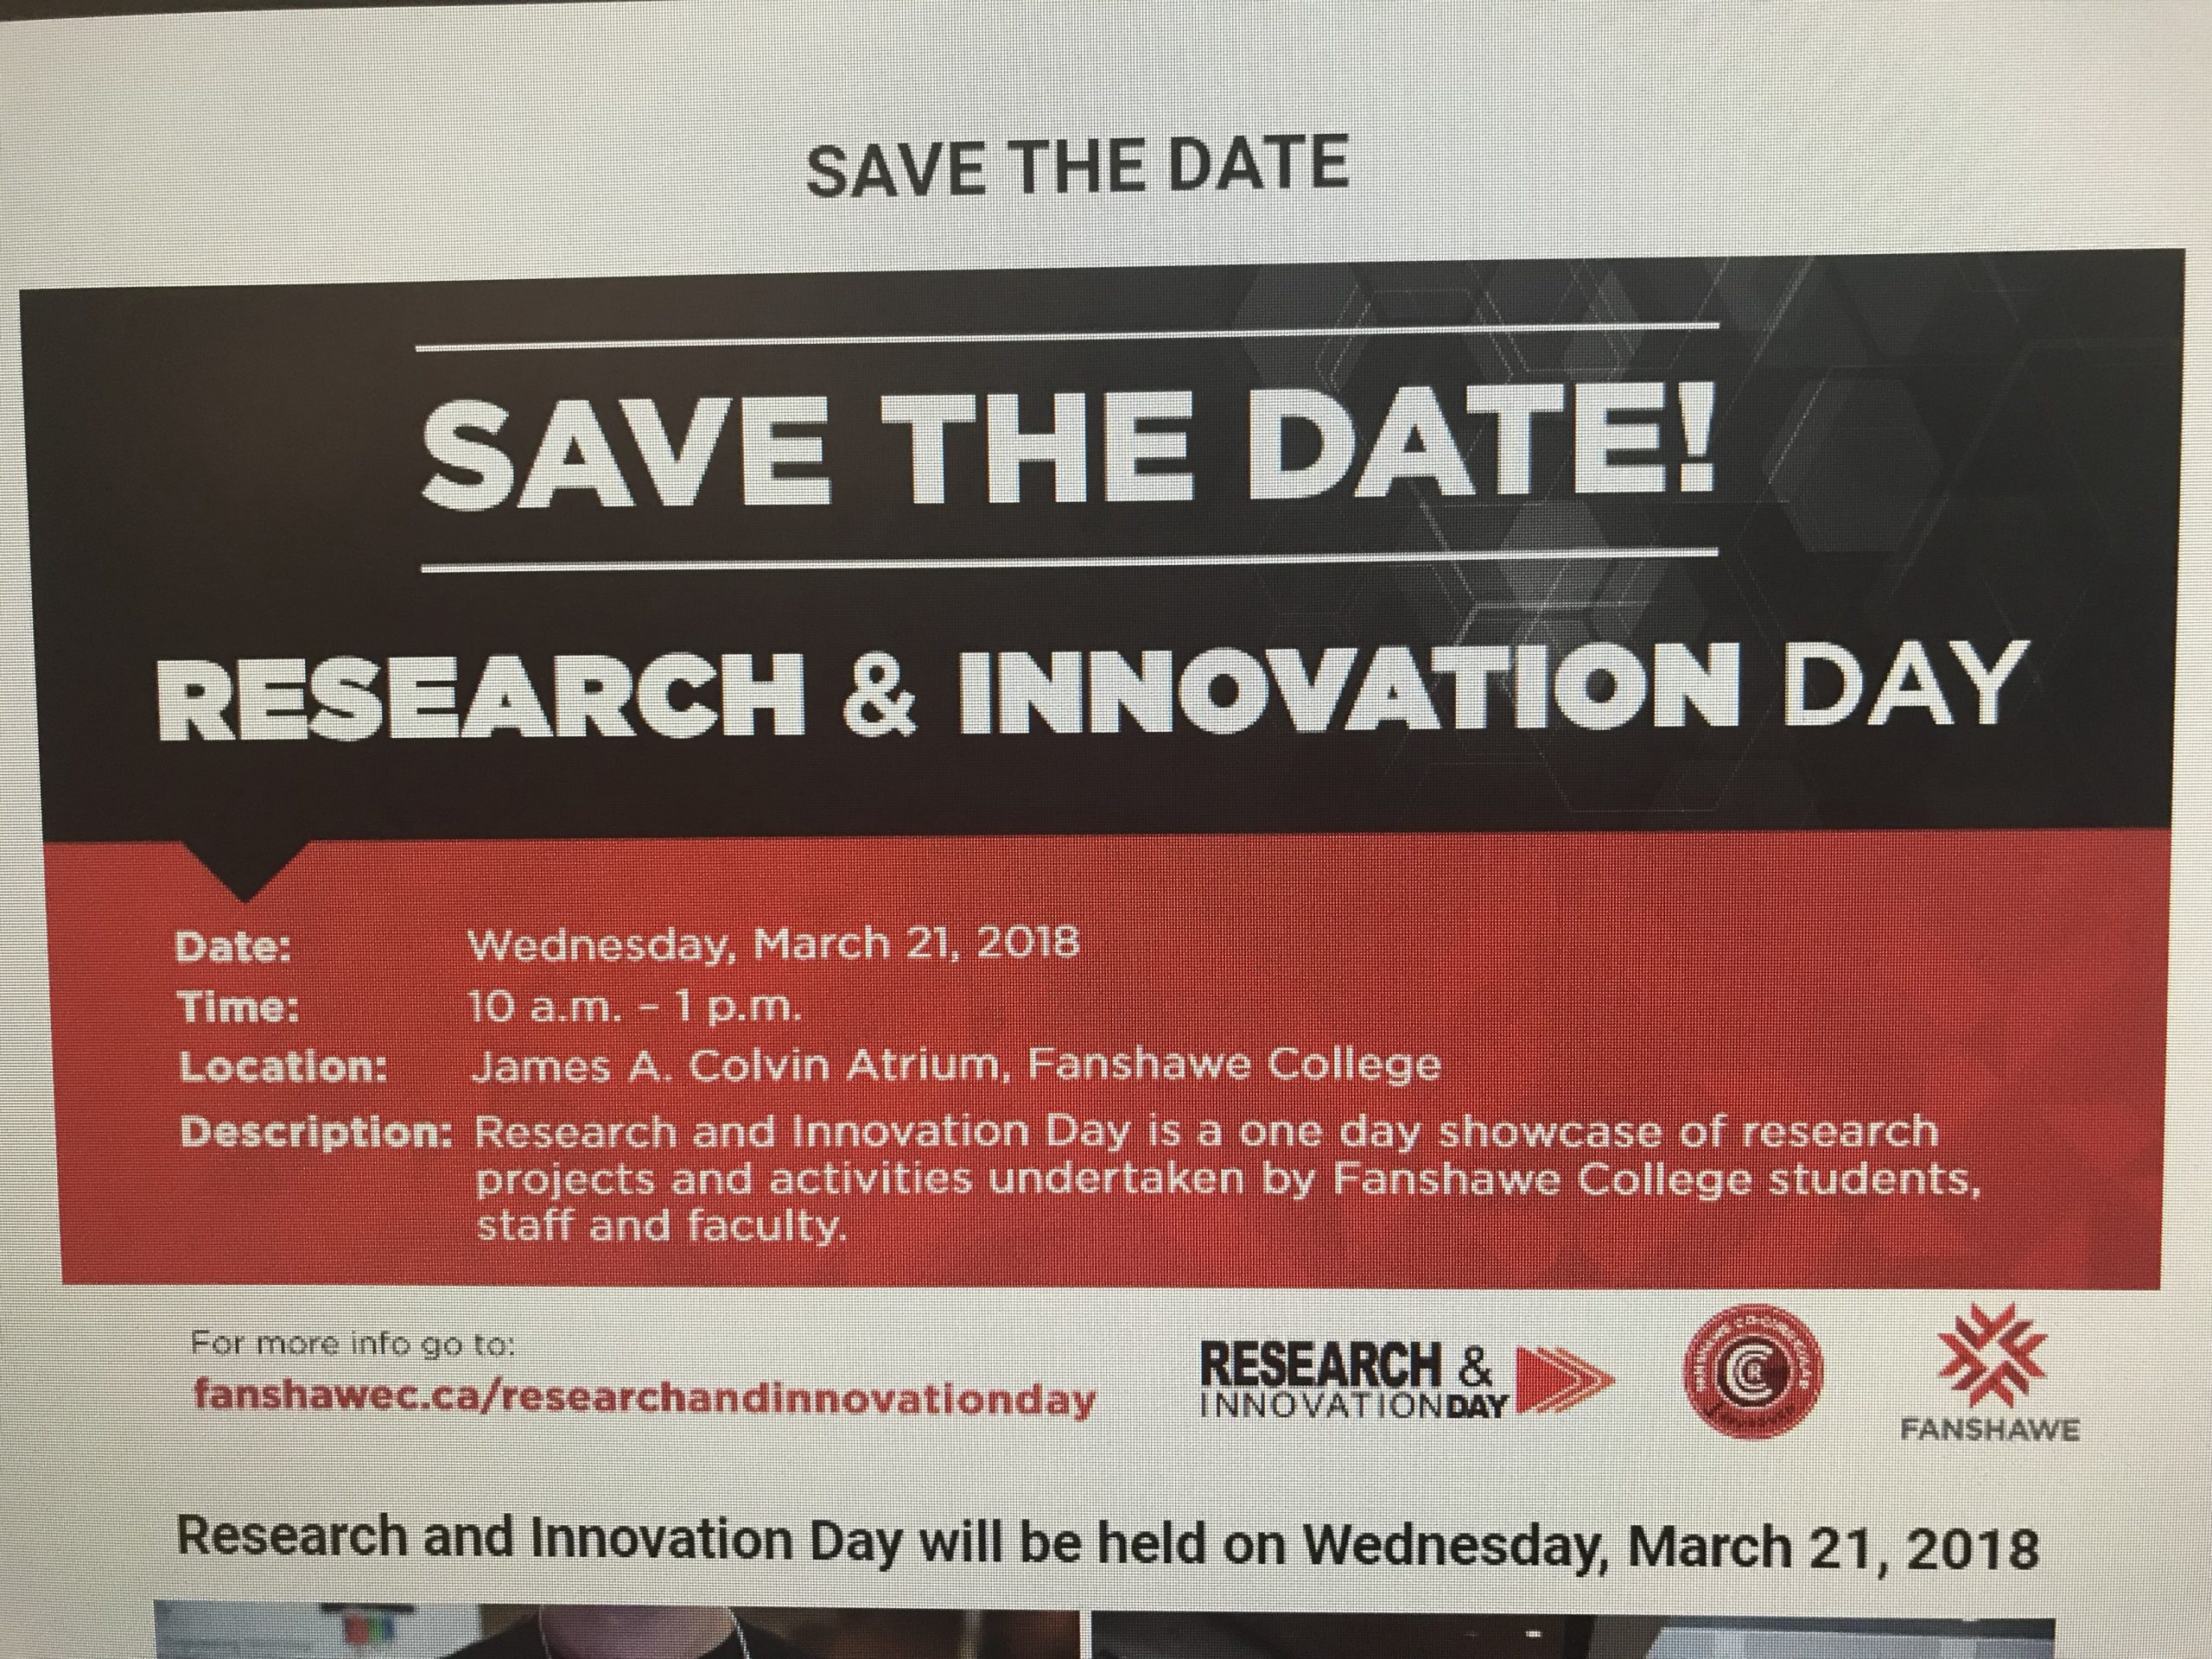 Preview on Research and Innovation Day at Fanshawe College